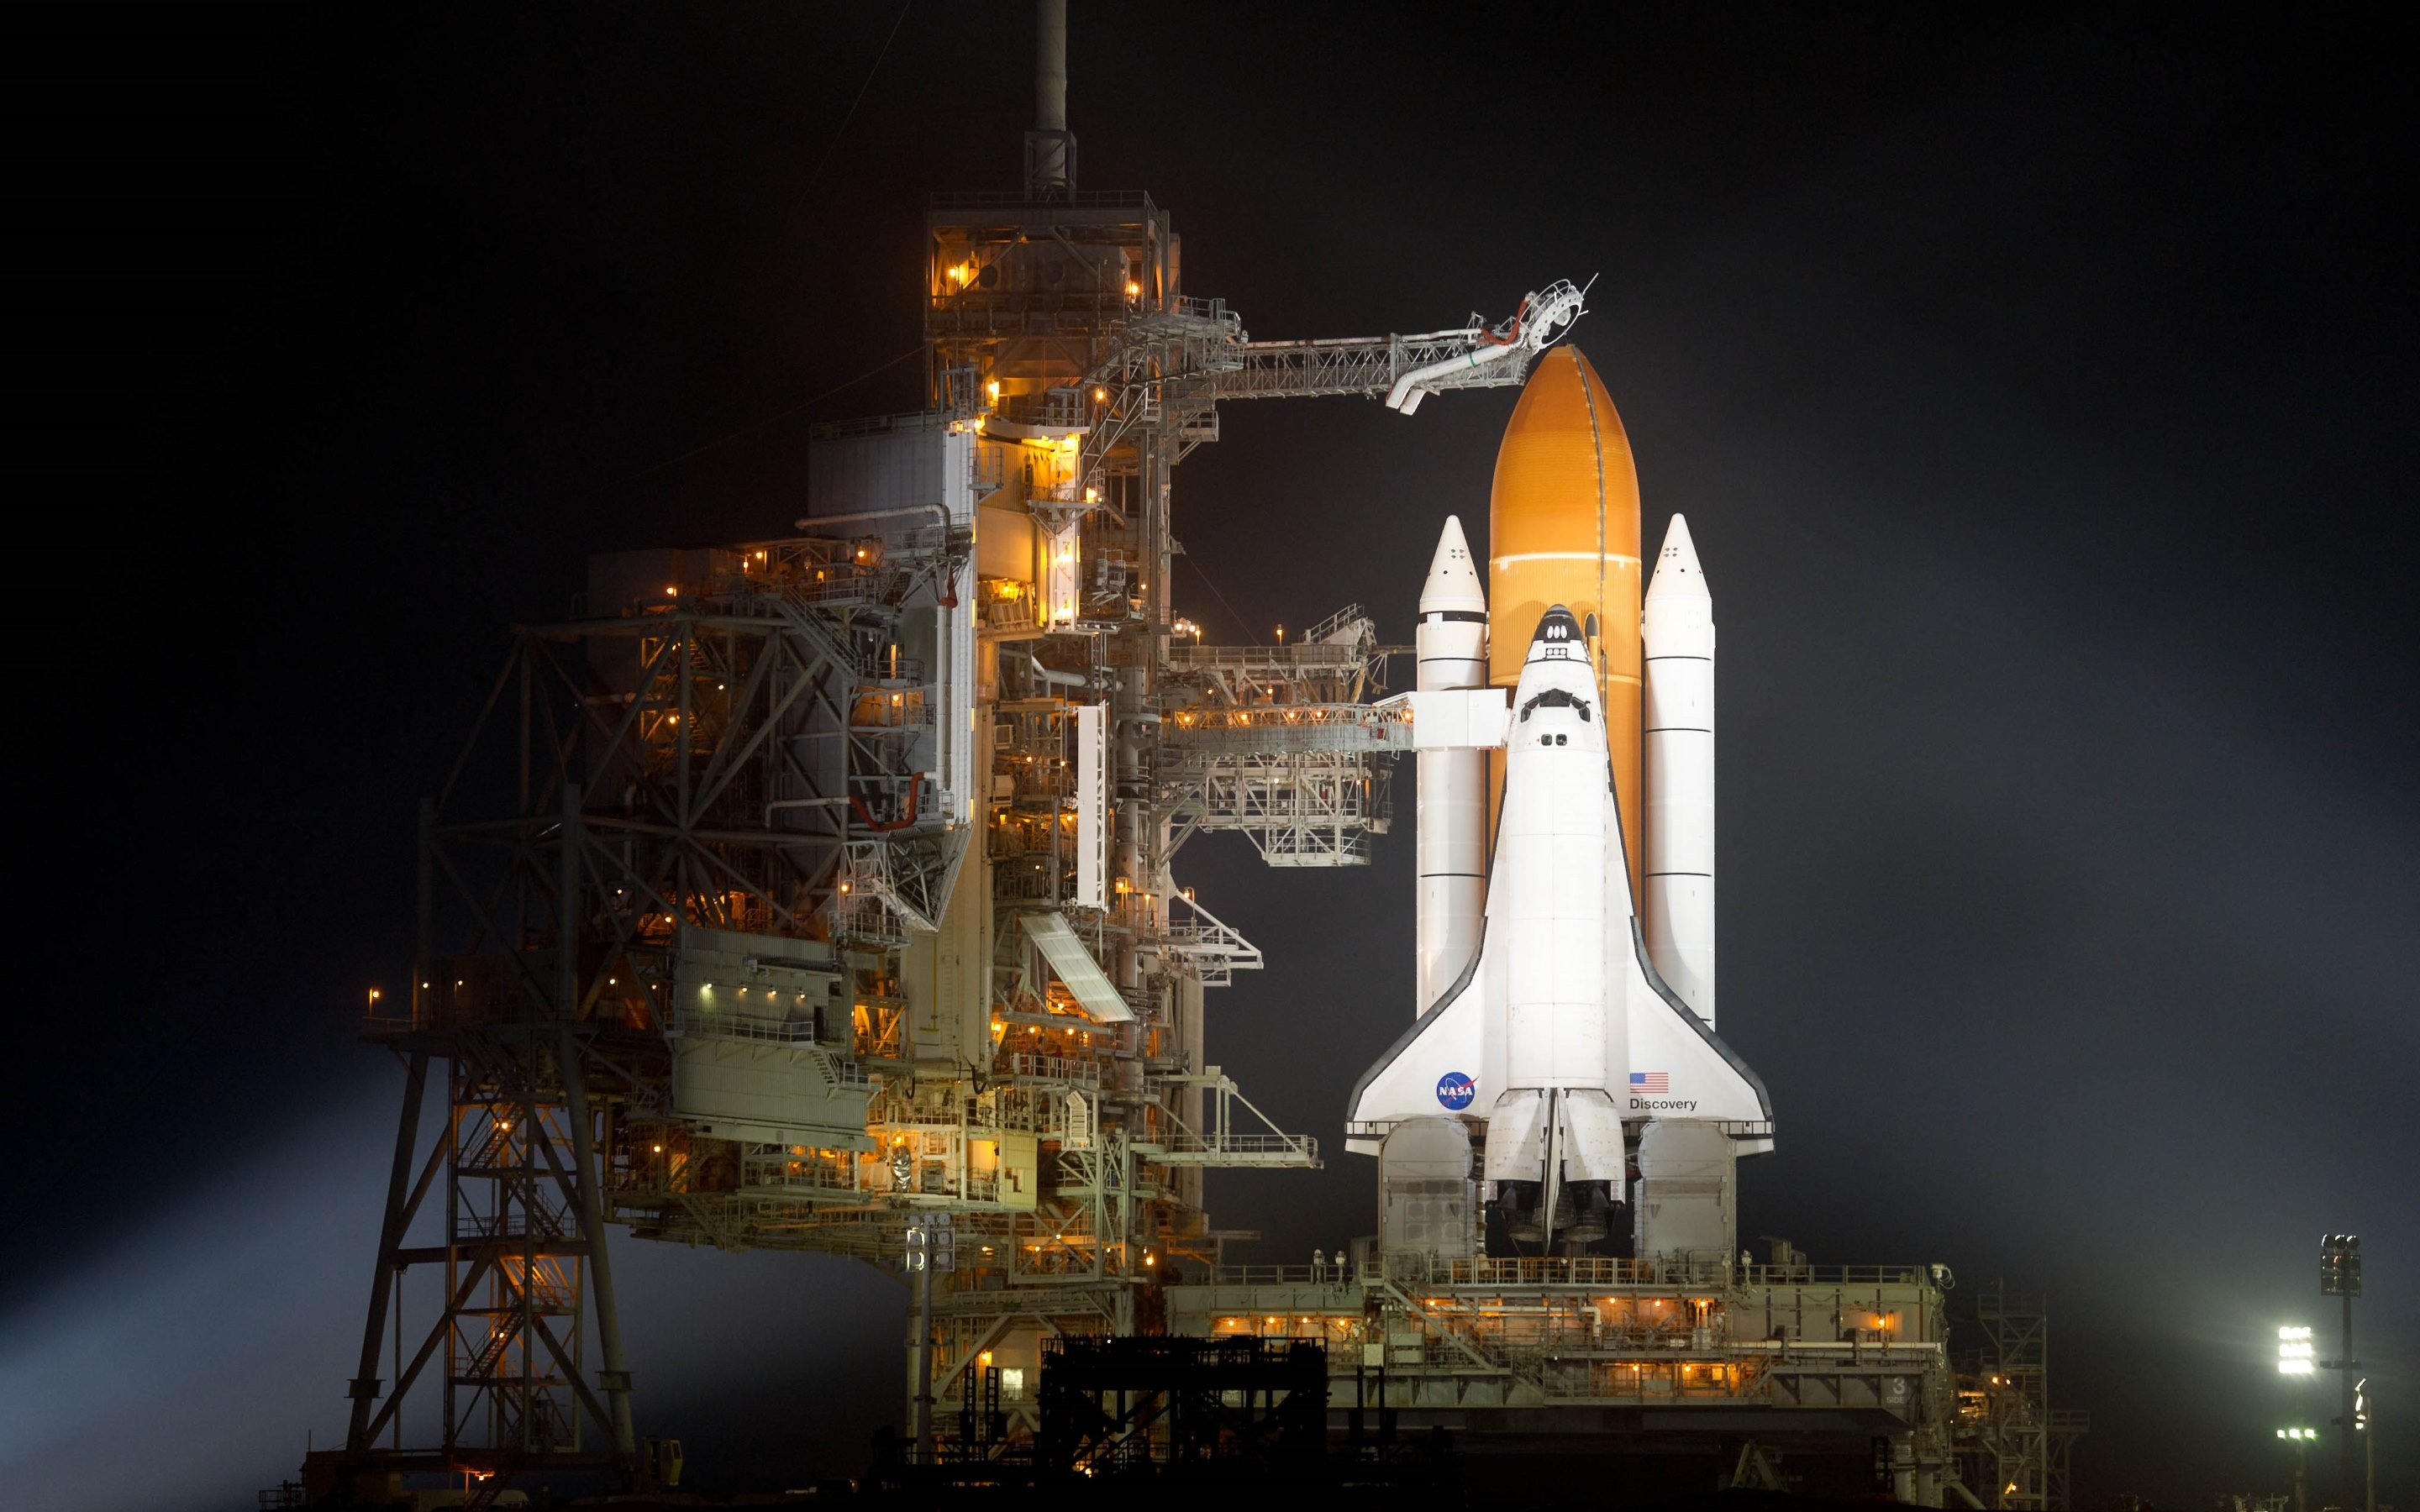 Space shuttle wallpapers 74 images - Nasa space wallpaper 1920x1080 ...